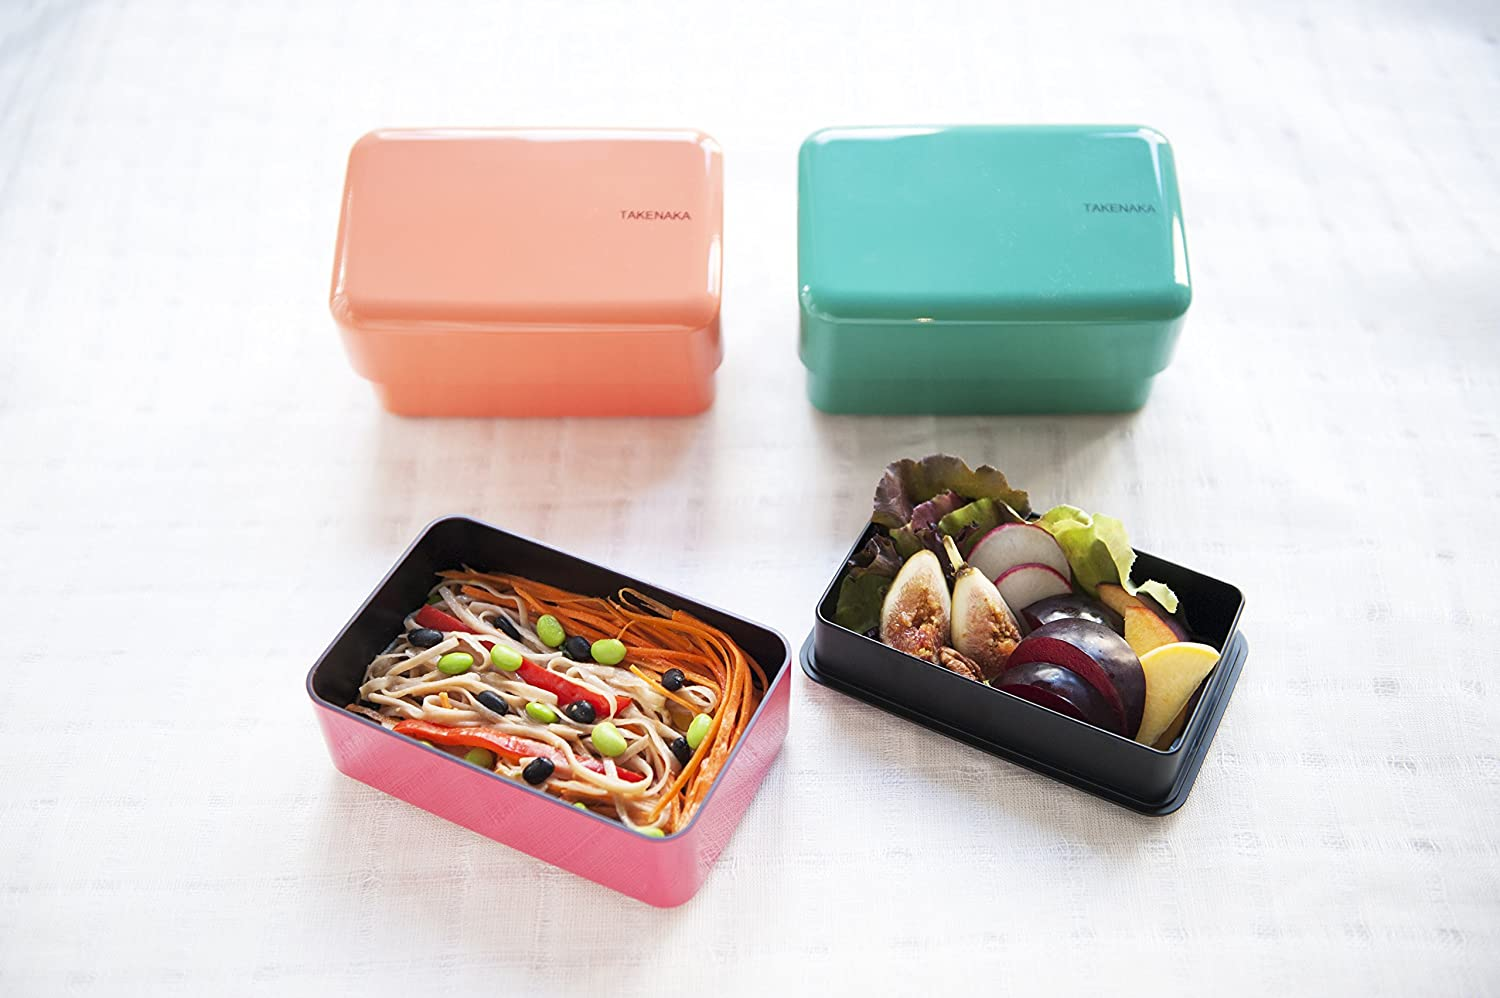 Top 9 Best Bento Box For Toddlers Lunch Time (2020 Reviews) 9